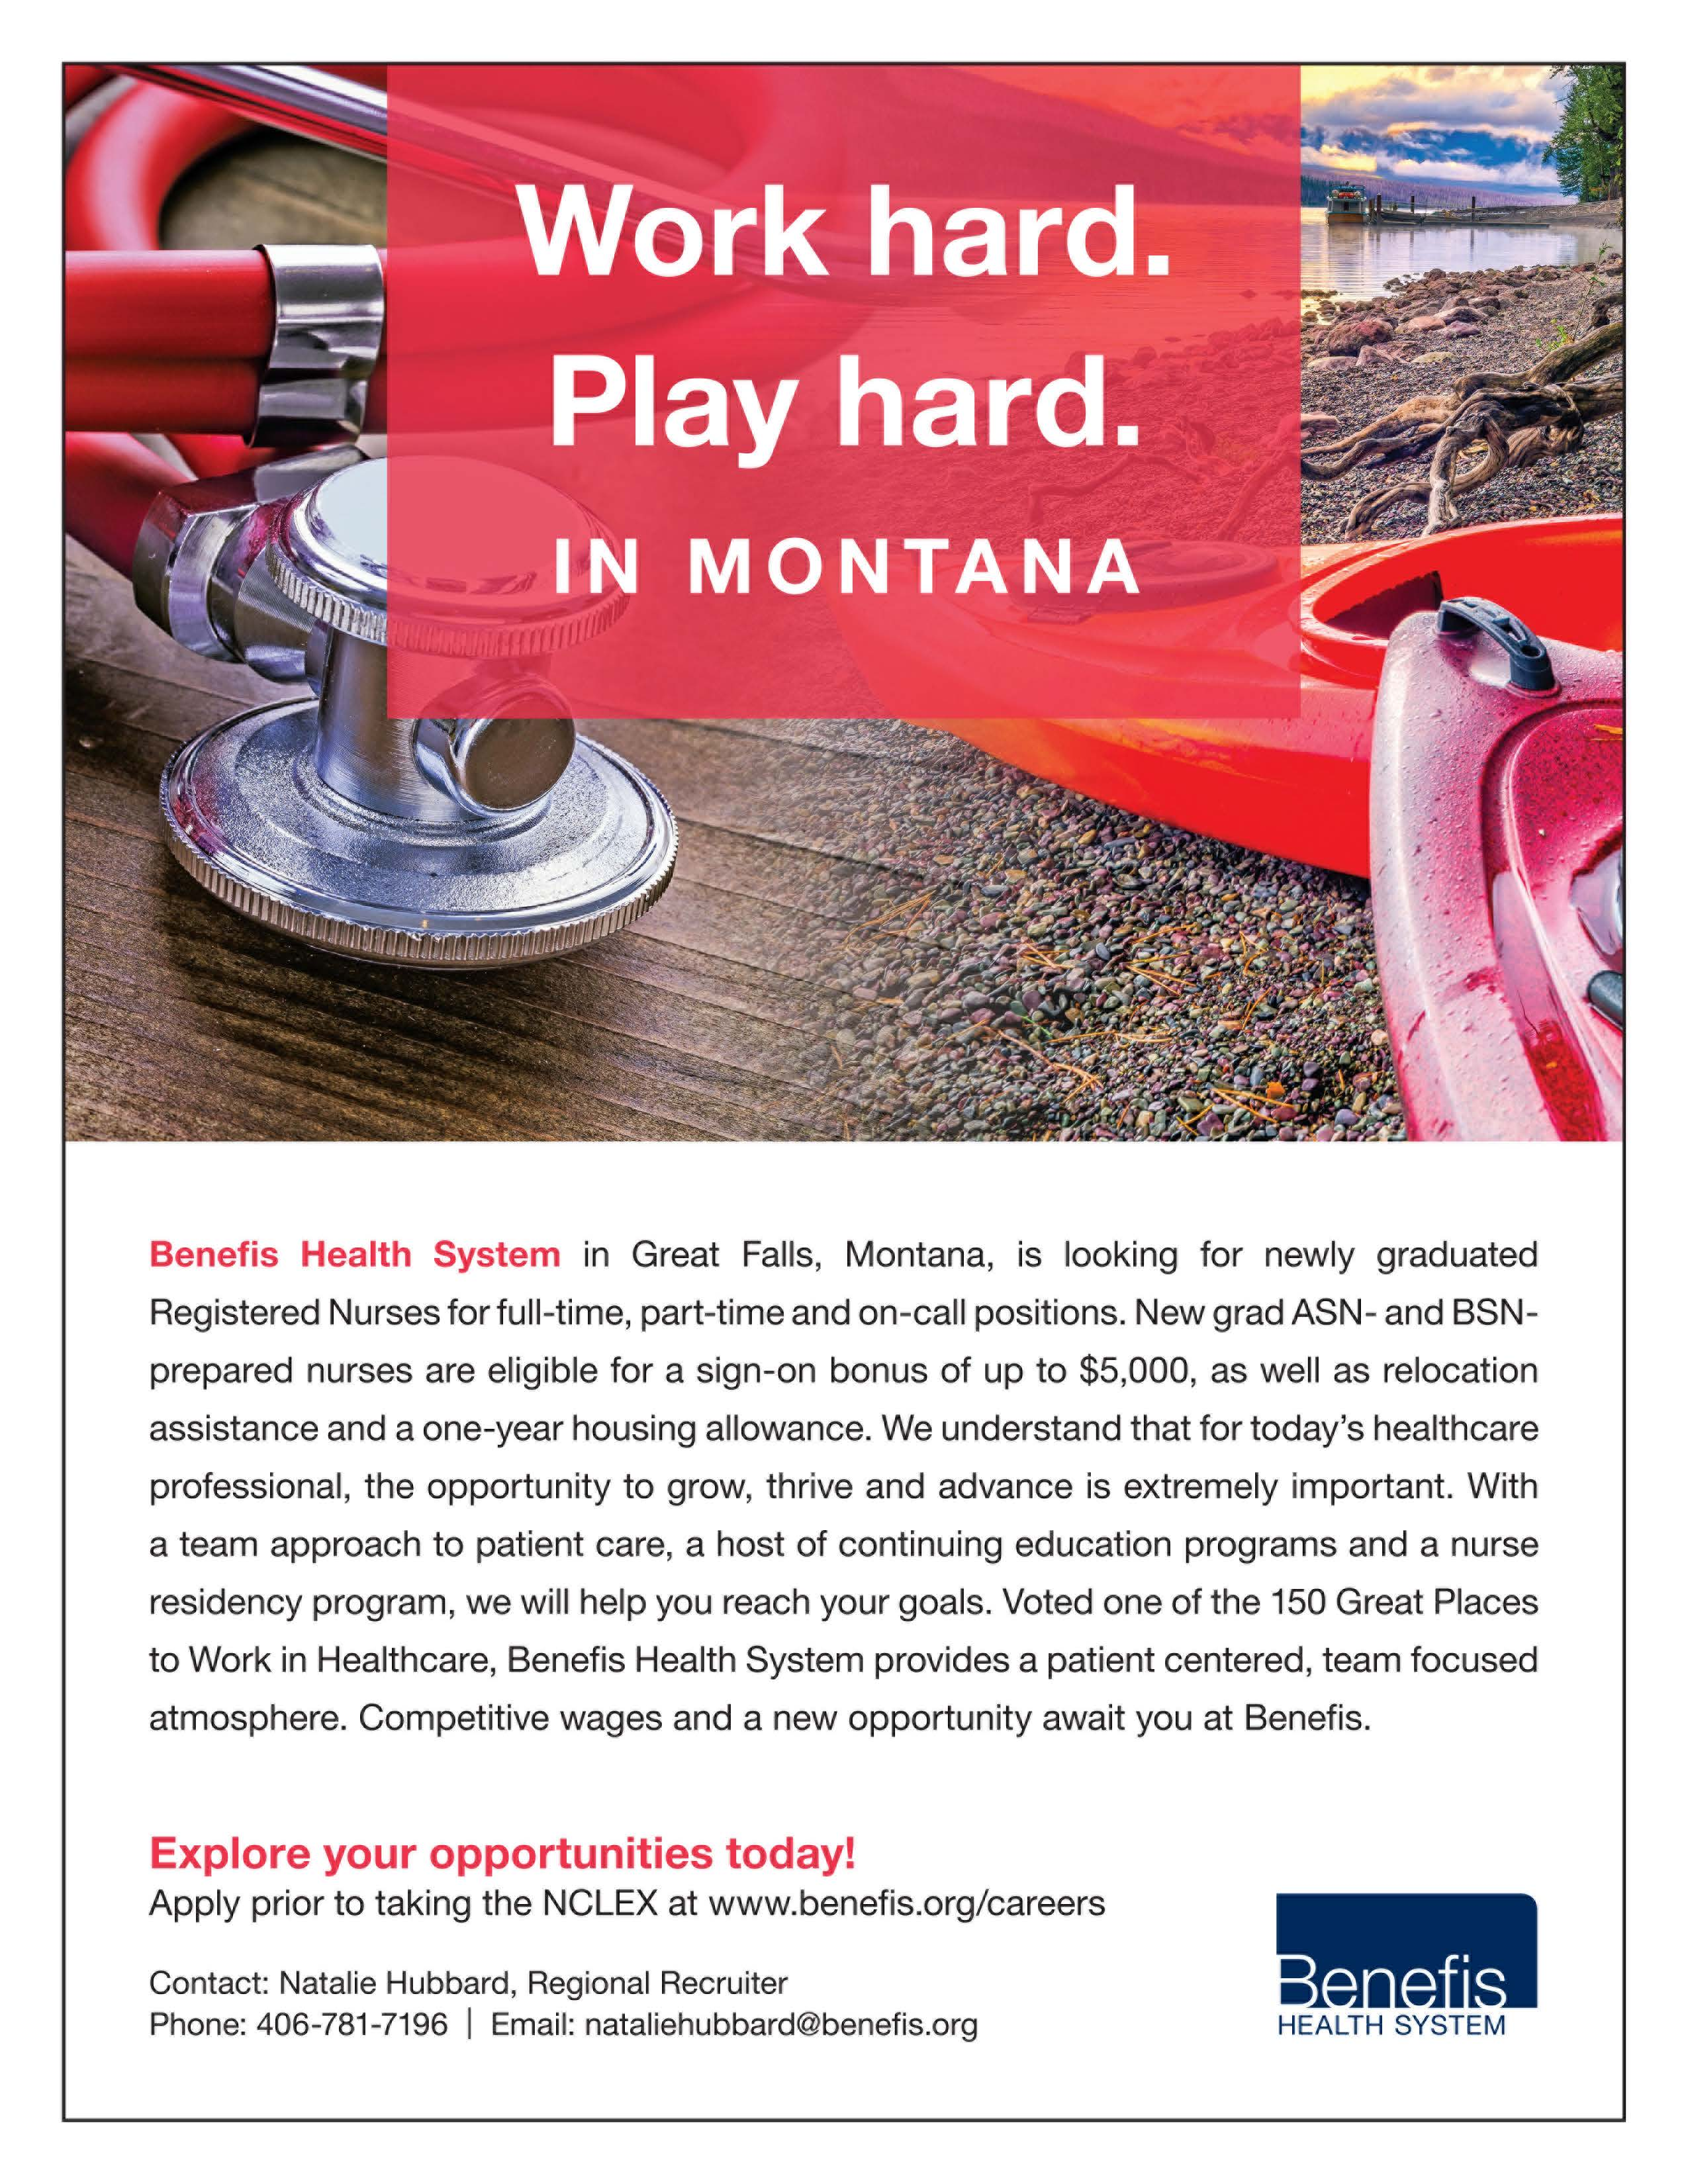 Work hard. Play hard. In Montana. Benefis Health System in Great Falls, Montana, is looking for newly graduated Registered Nurses for full-time, part-time, and on-call positions. New grad ASN- and BSN- prepared nurses are elible for a sign-on bonus up to $6,000, as well as relocation assistance and a one-year housing allowance. We understand that for today's healthcare professional, the opportunity to grow, thrive and advance is extremely important. With a team approach to patient care, a host of continuing education programs and a nurse residency program, we will help you reach your goals. Voted one of the 150 Great Places to work in Healthcare, Benefis Health System provides a patient centered, team focused atmosphere. Competitive wages and a new opportunity await you at Benefis. Explore your opportunities today! Apply prior to taking the NCLEX at www.benefis.org/careers Contact: Natalie Hubbard, Regional Recruiter Phone: 406-781-7196 Email: nataliehubbard@benefis.org